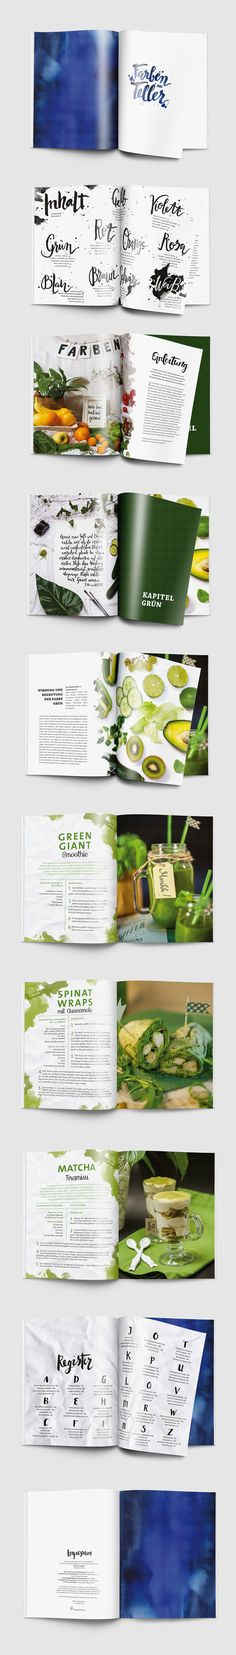 Cookbook Design on Behance